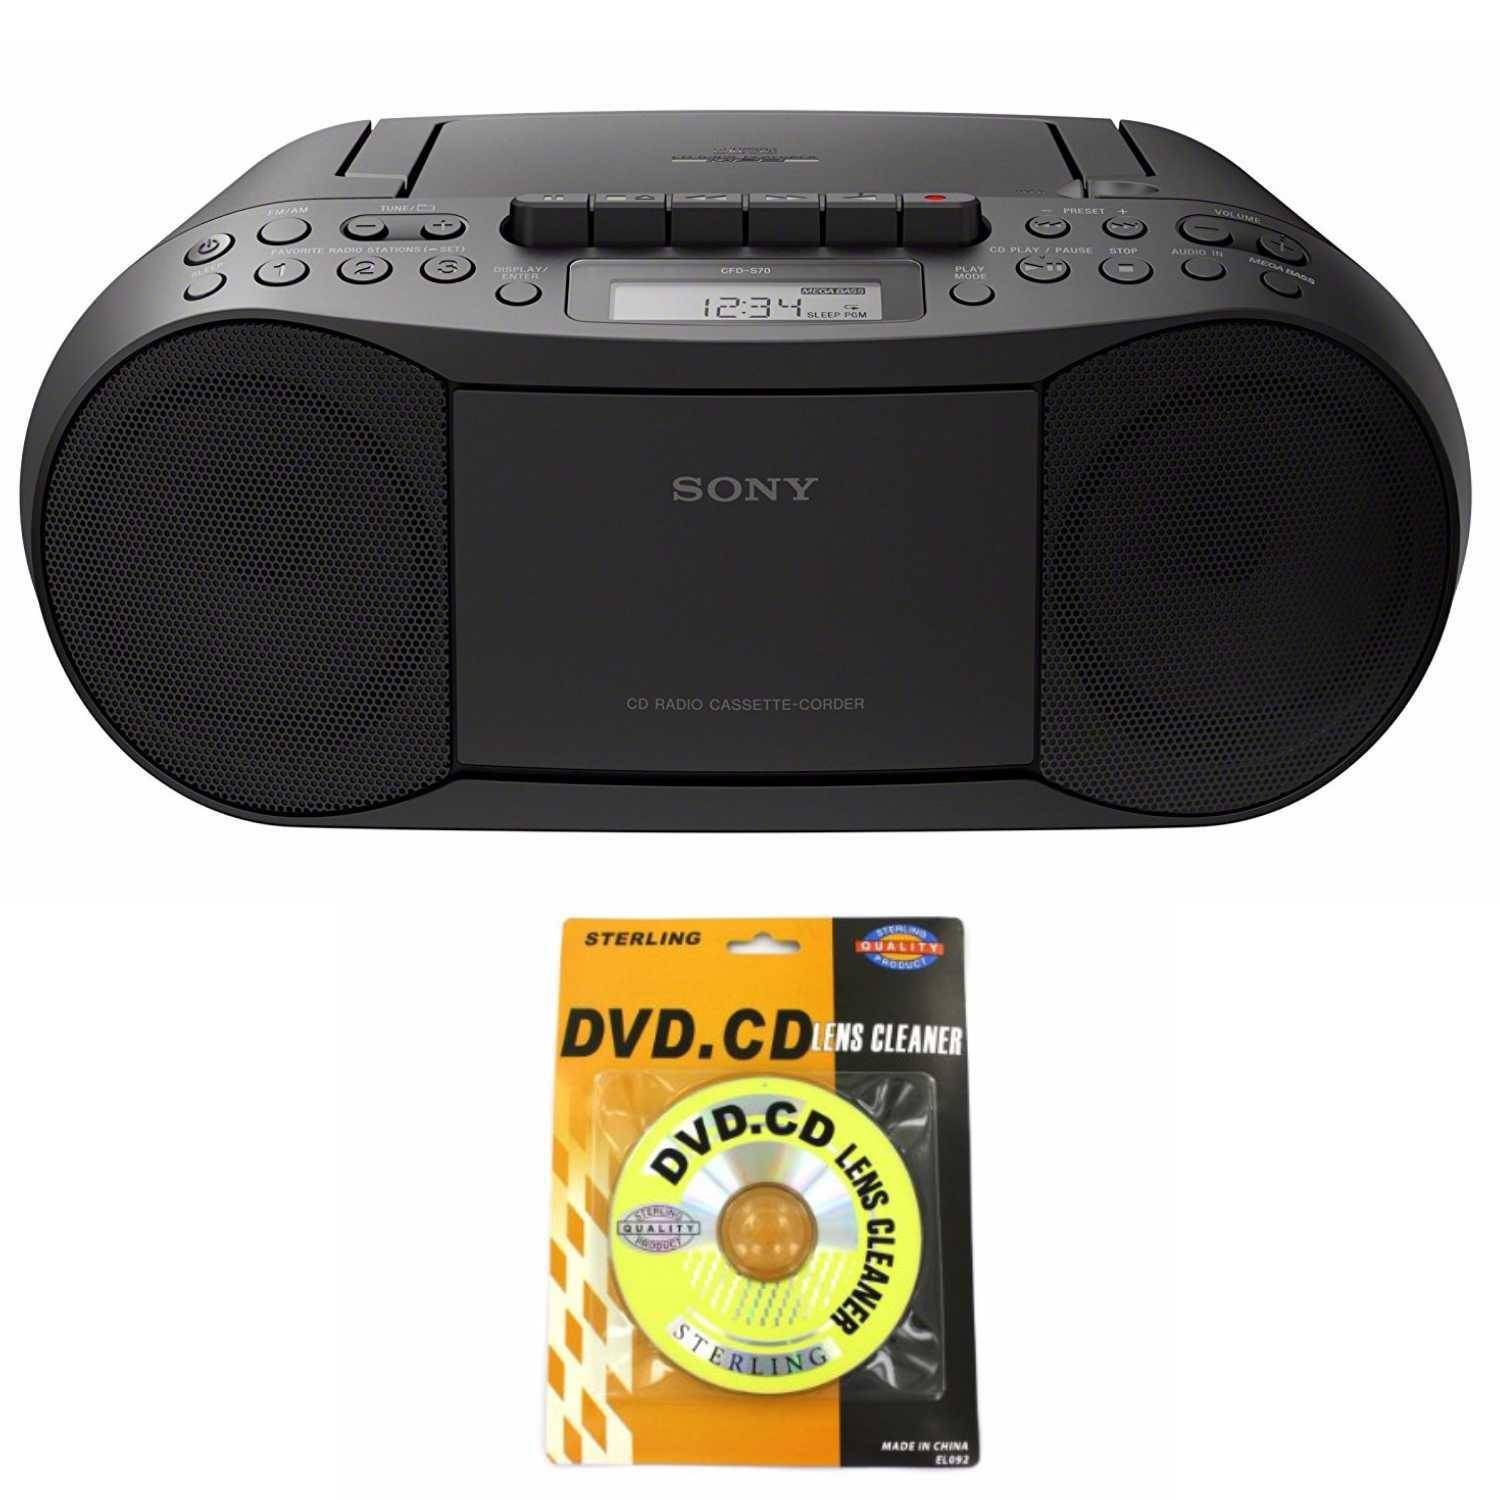 Sony Stereo CD/Cassette Boombox Home Audio Radio (Black) with Lens Cleaner